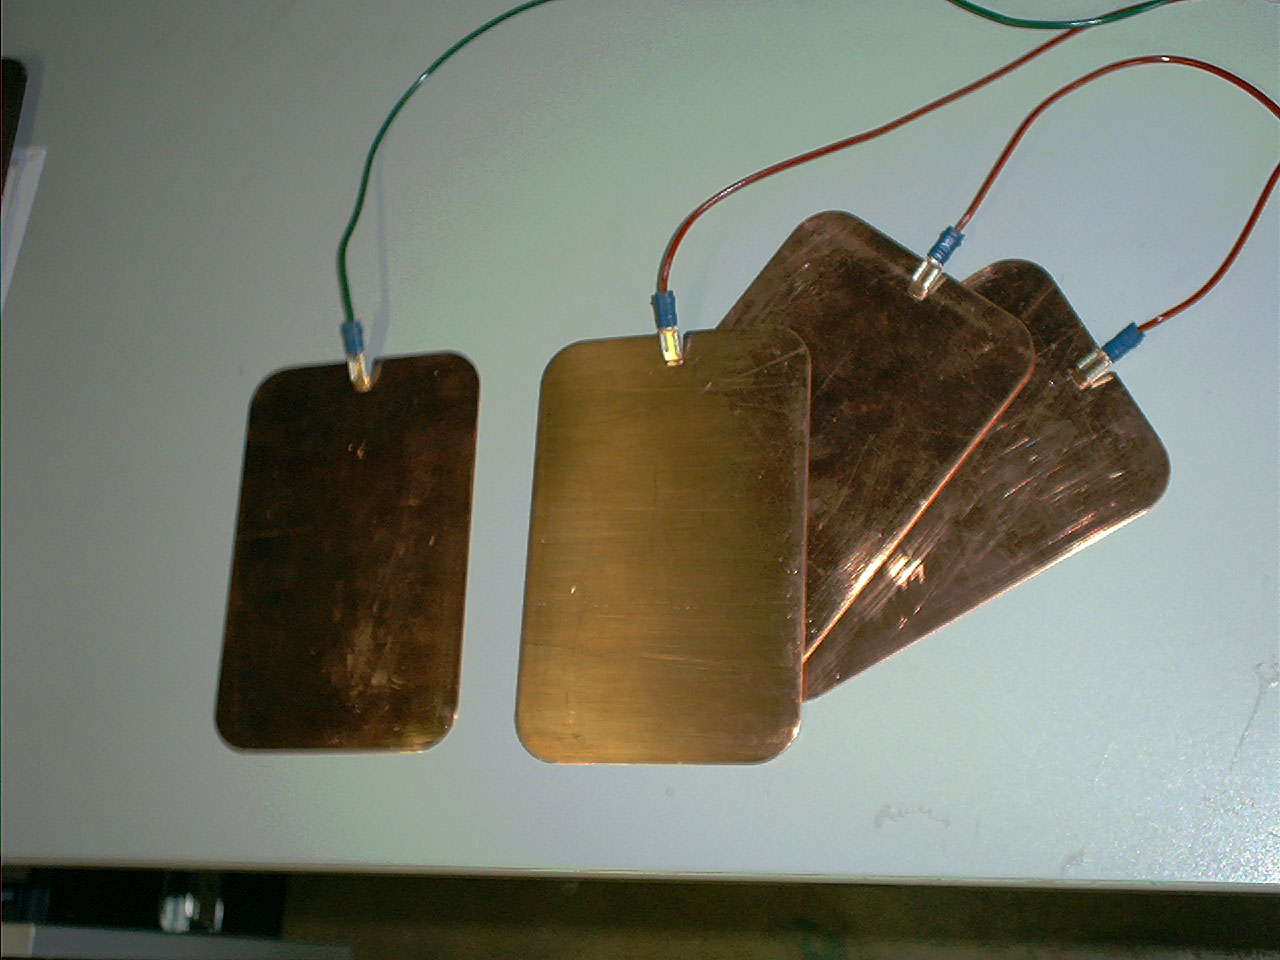 Set of 4 copper large zapping pads